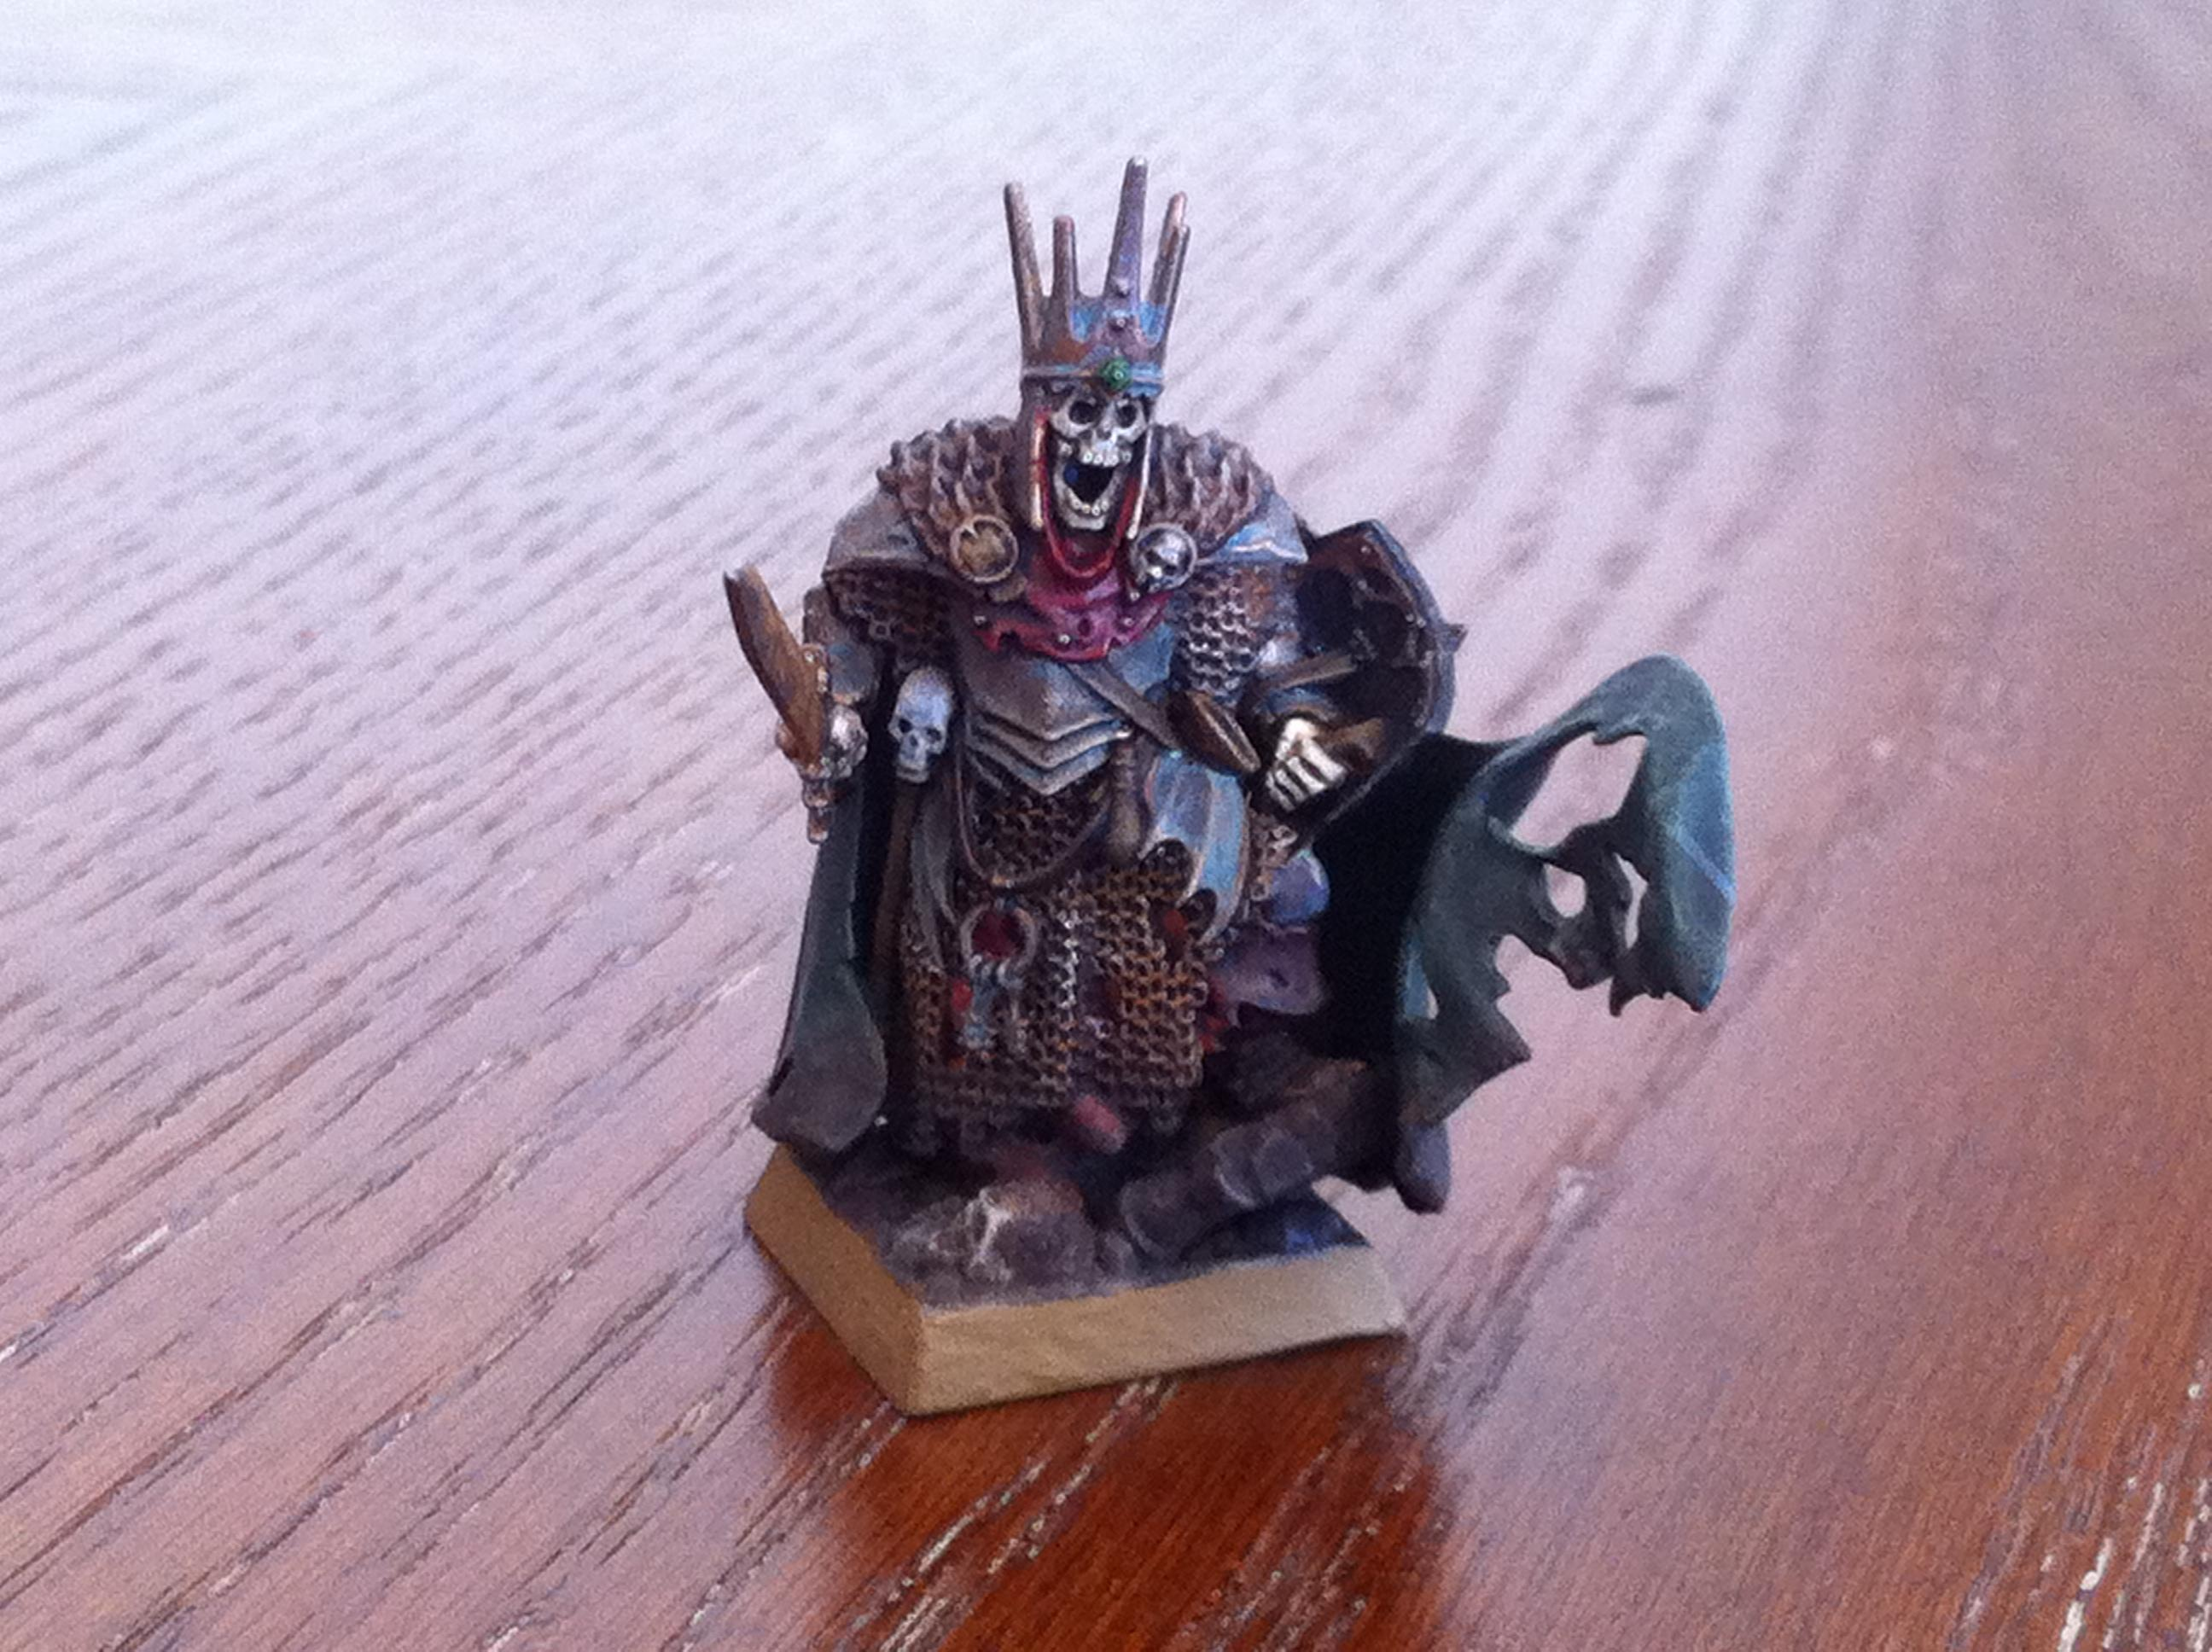 Undead, Wight